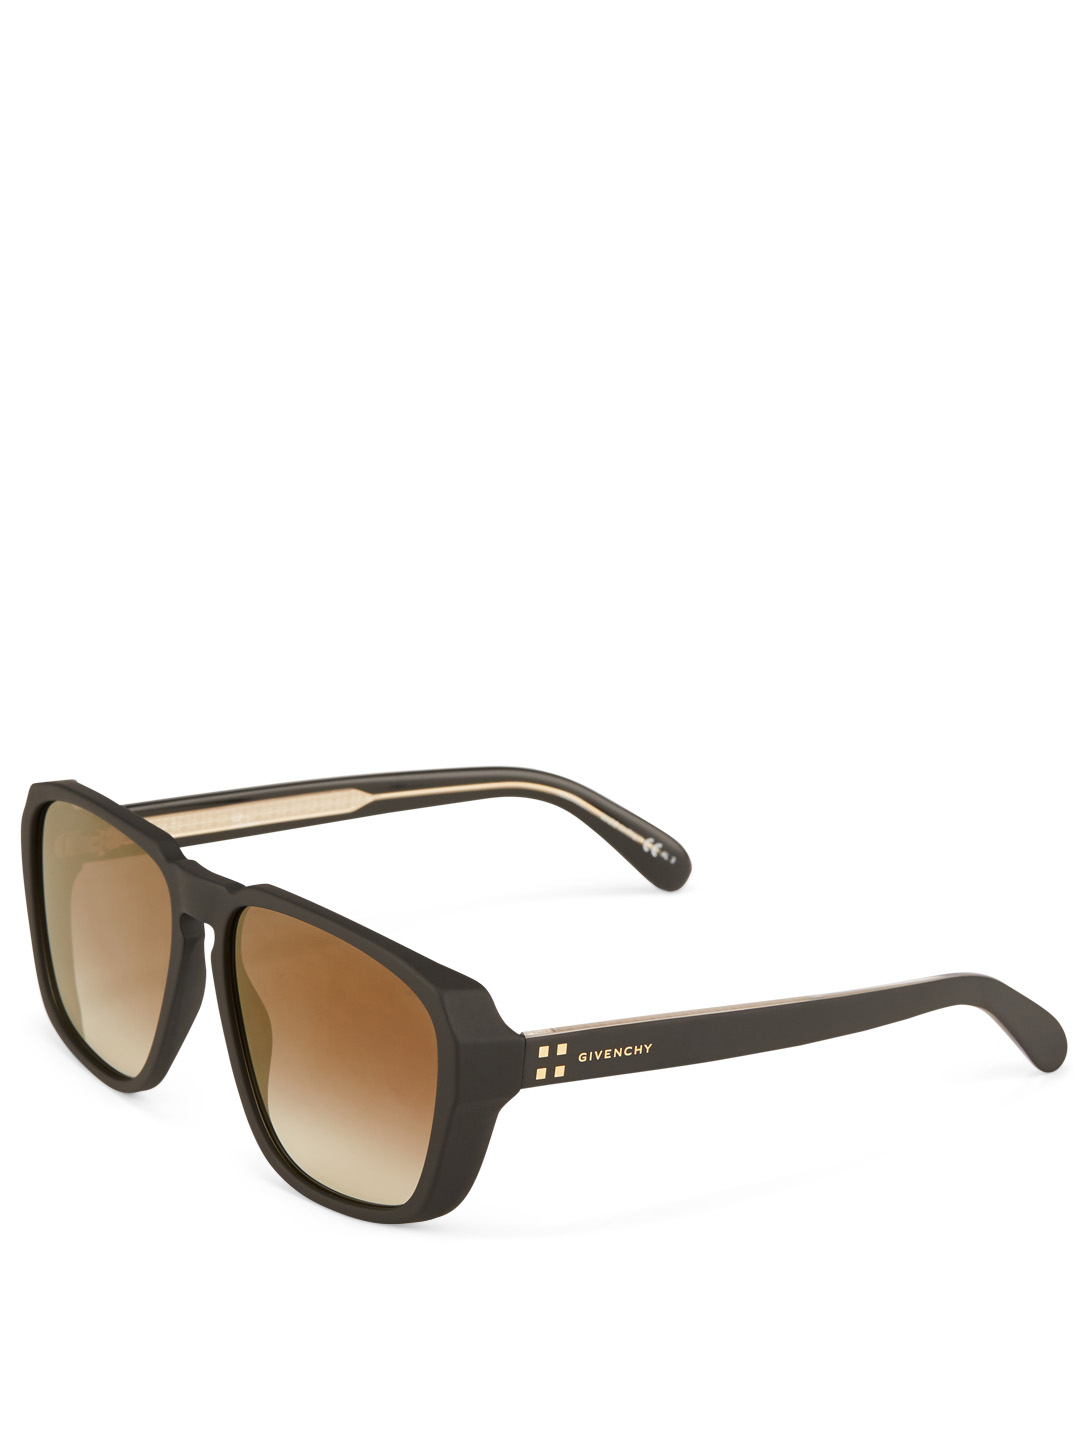 GIVENCHY Square Sunglasses Designers Gold